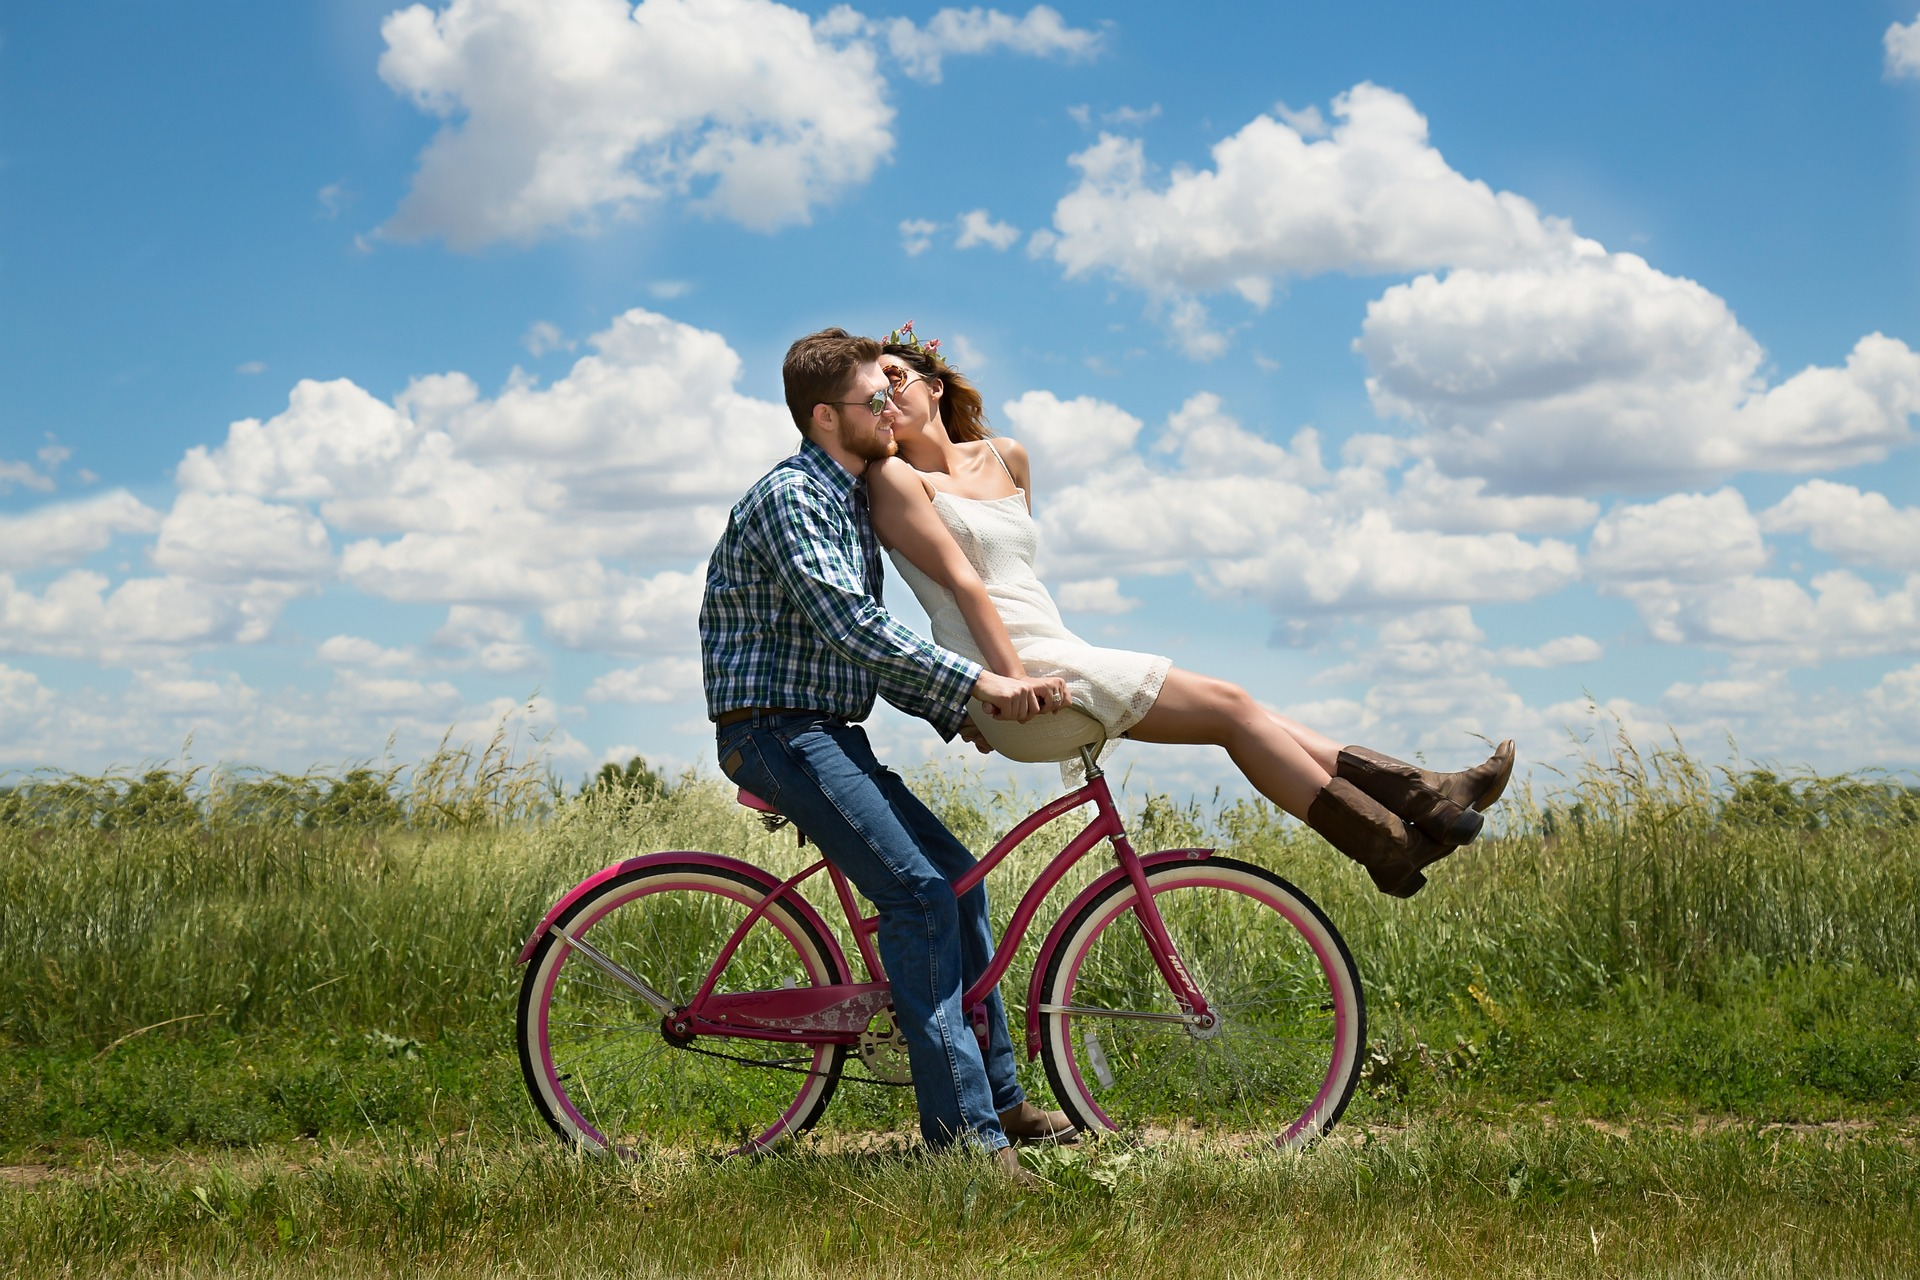 Couple in love riding a bike